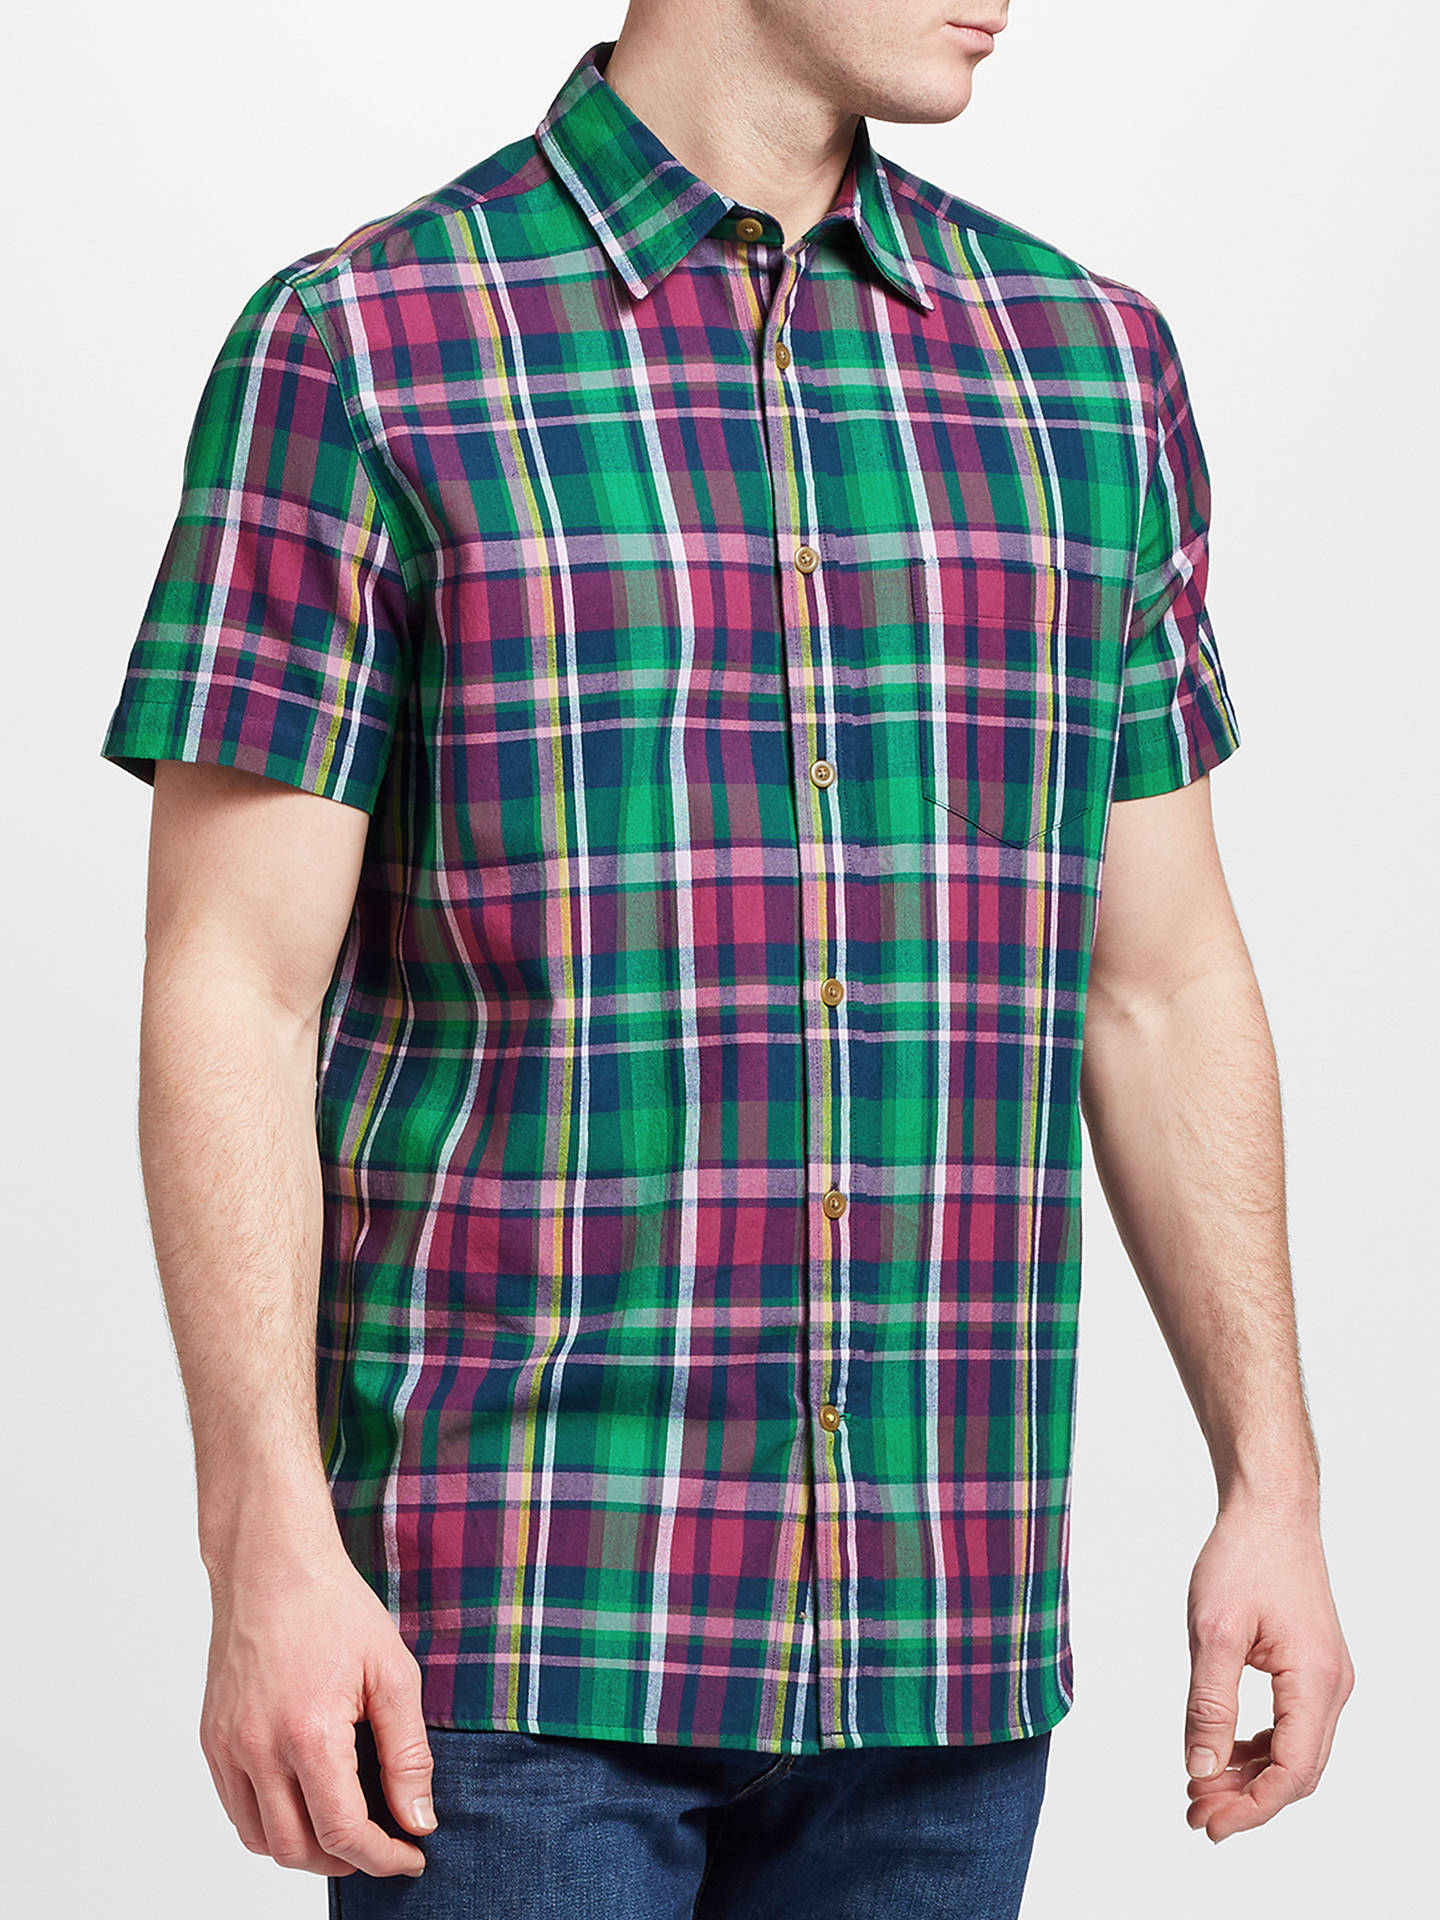 BuyJohn Lewis & Partners Fenton Short Sleeve Check Shirt, Berry, S Online at johnlewis.com